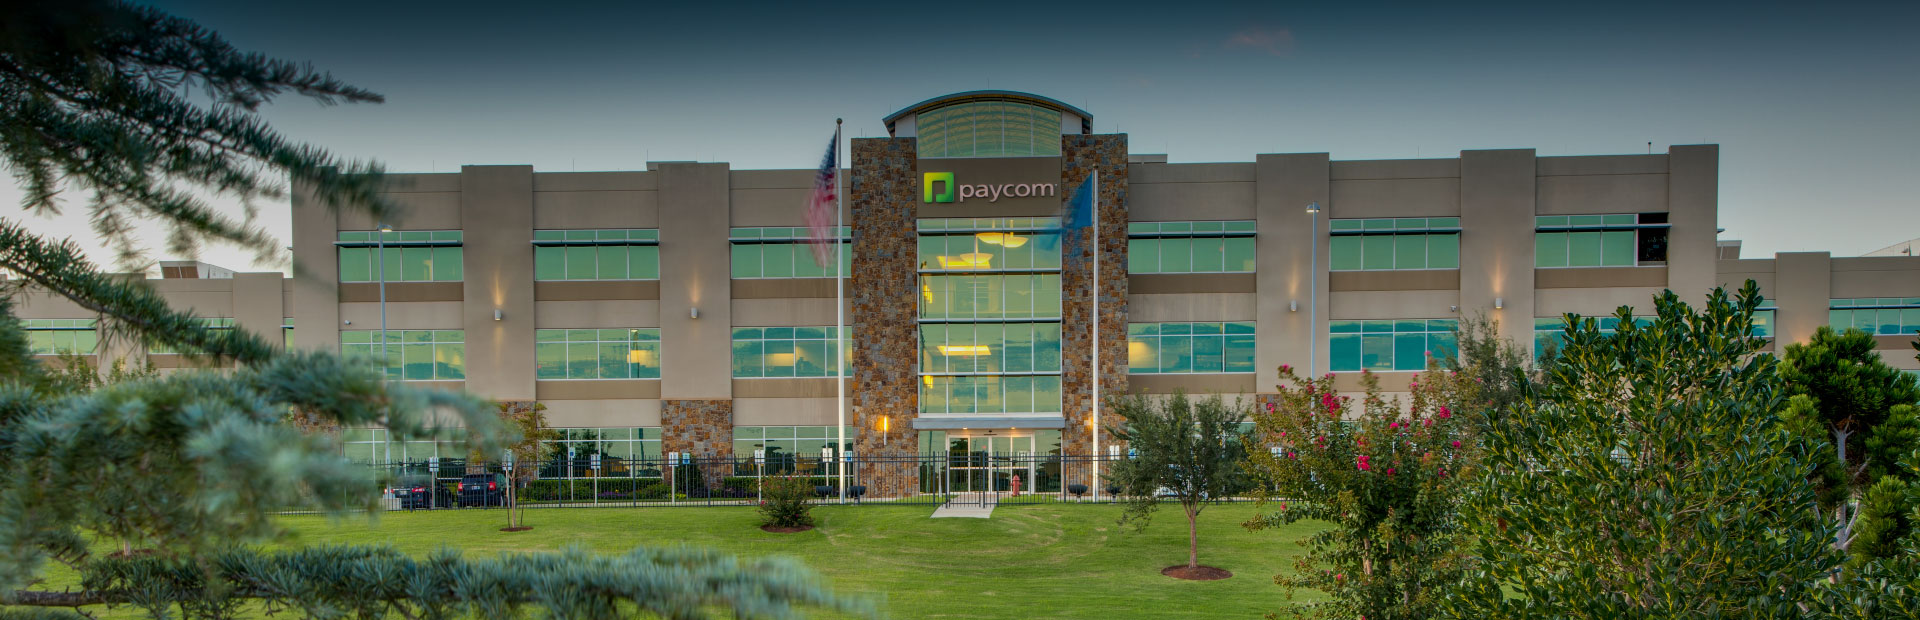 Payroll and HR Software in Corporate-hq | Paycom